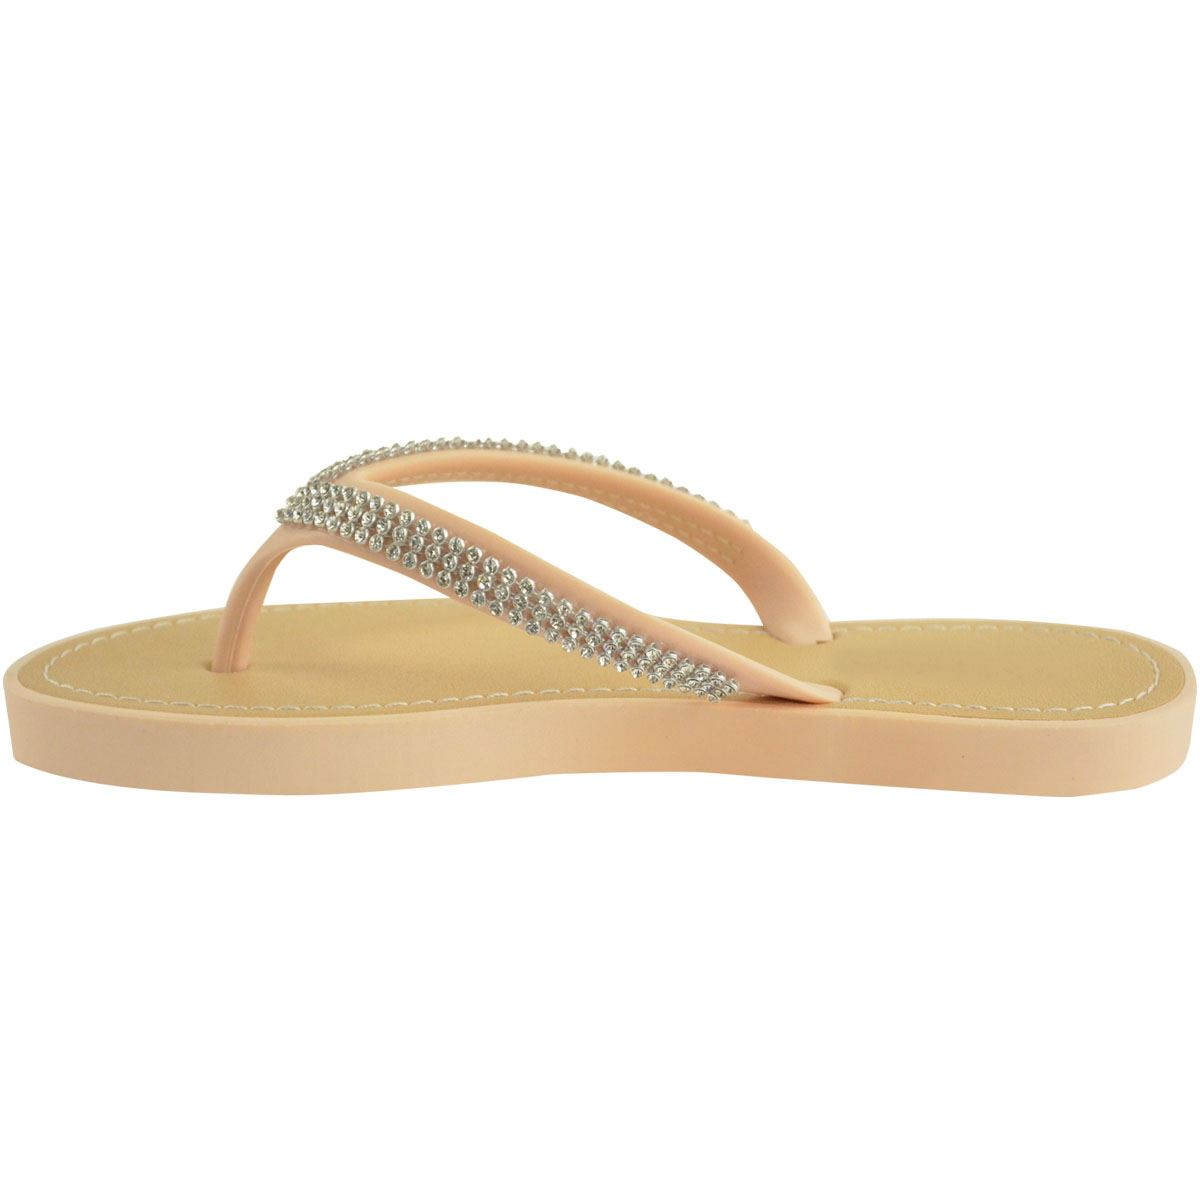 NEW-JELLY-SANDALS-WOMENS-LADIES-DIAMANTE-SUMMER-HOLIDAY-COMFORTS-FLIP-FLOPS-SIZE thumbnail 58